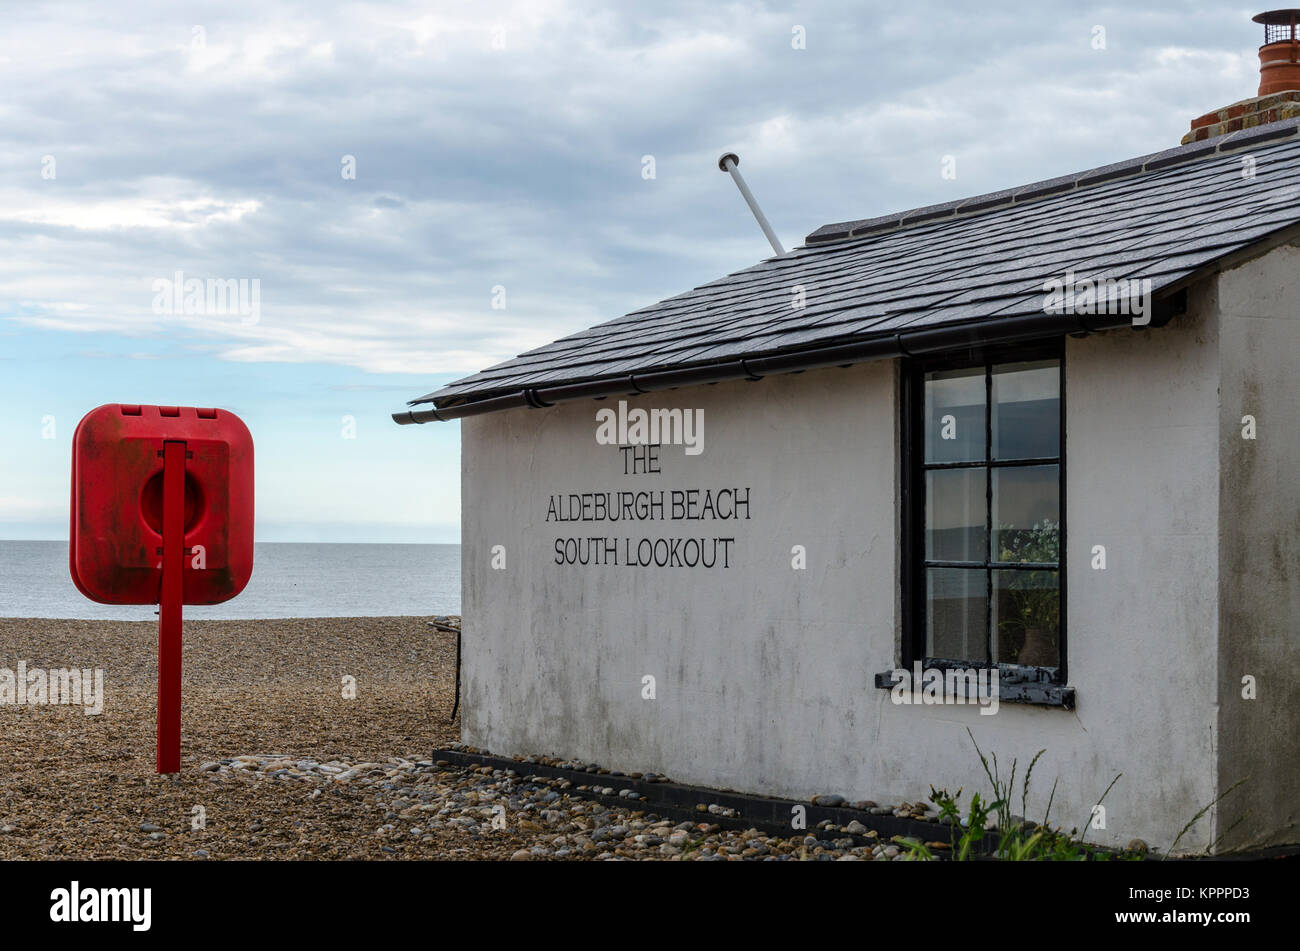 The Aldeburgh Beach South Lookout, Aldeburgh English coastal town in Suffolk, UK - Stock Image